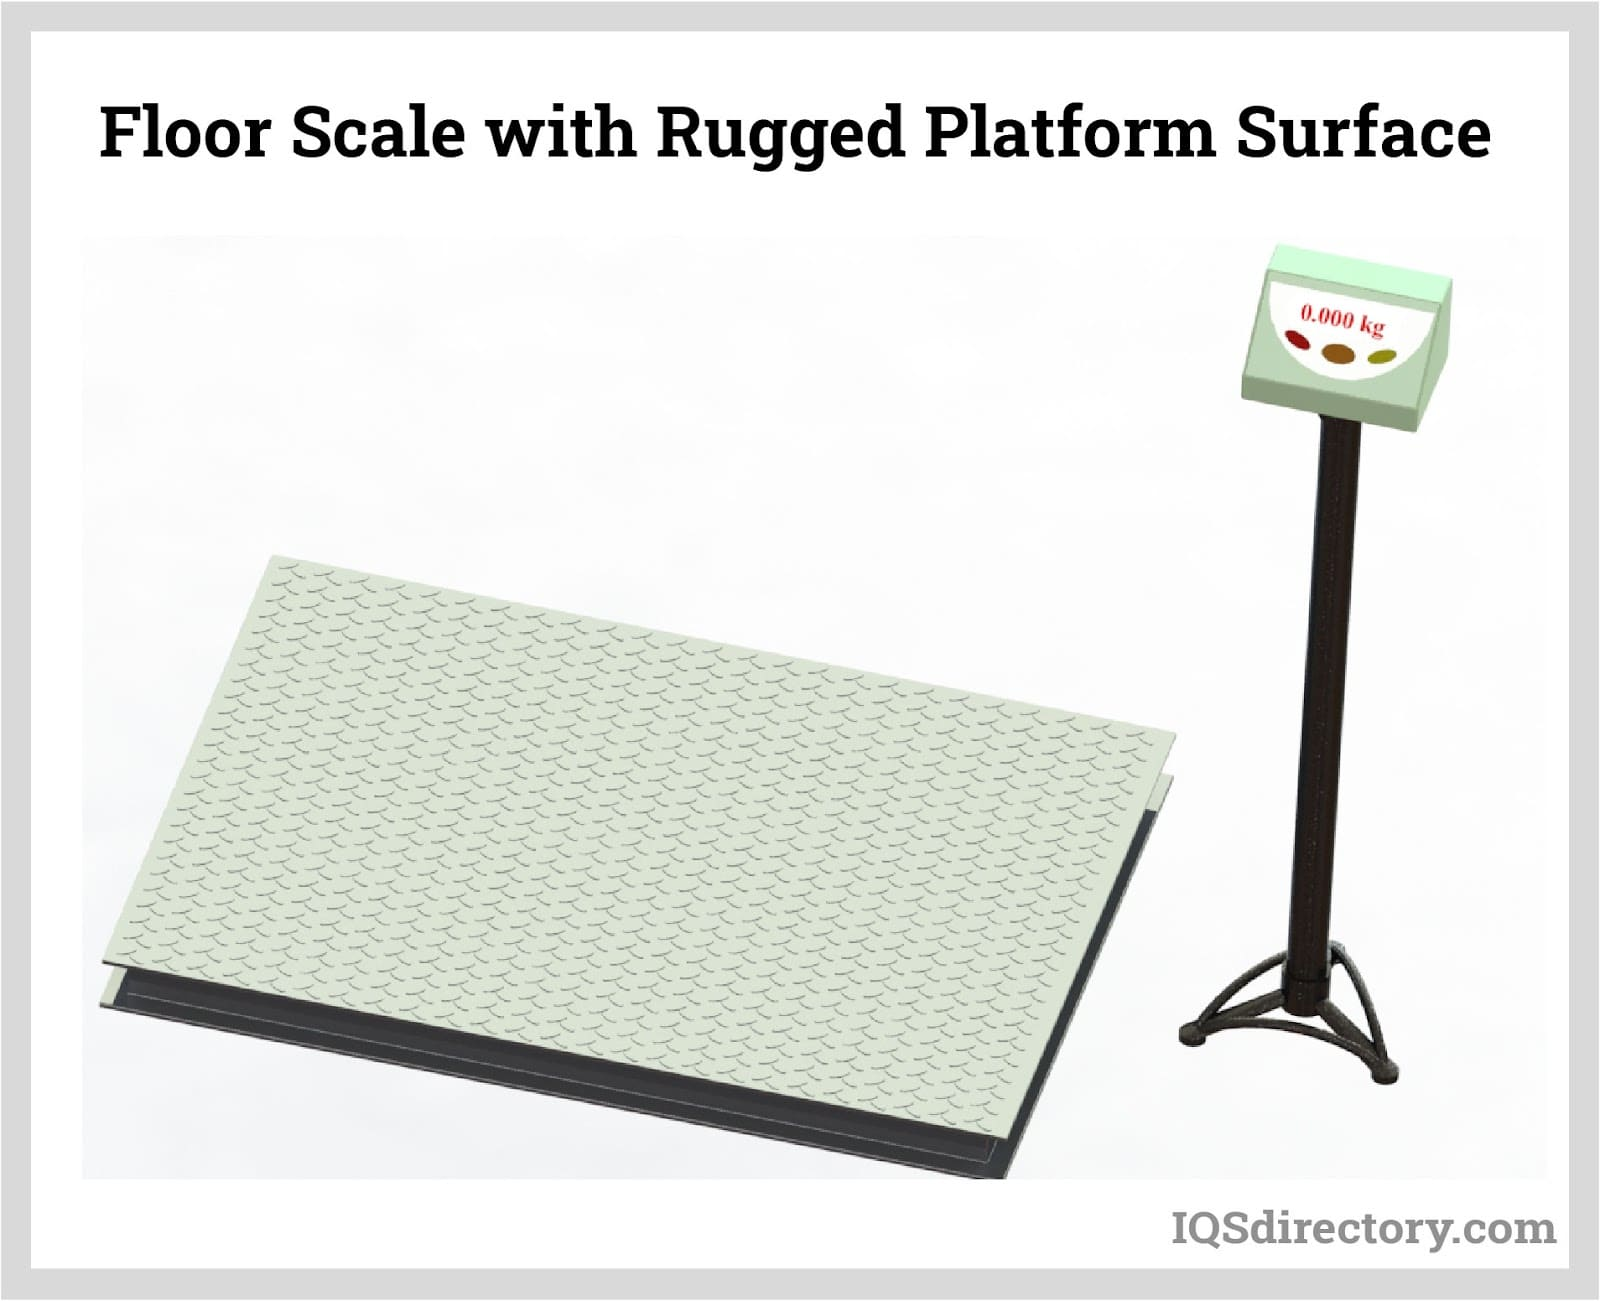 Floor Scale with Rugged Platform Surface